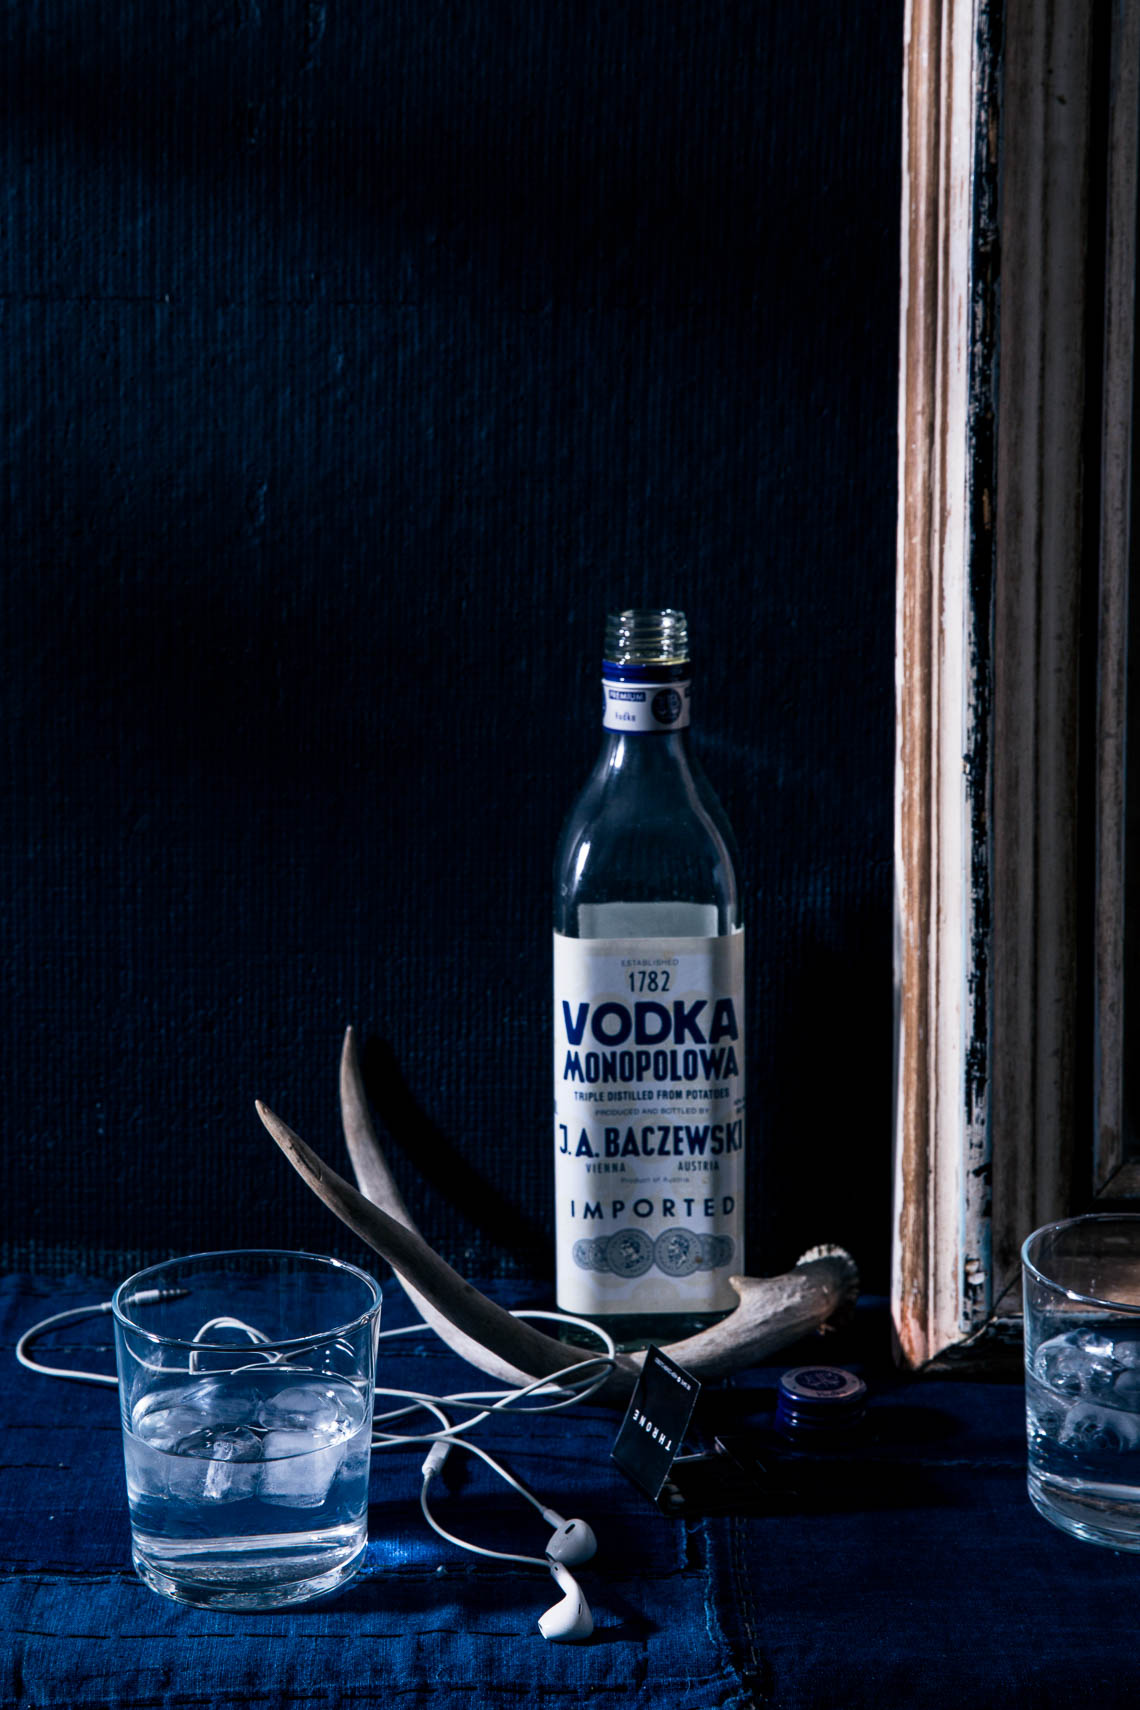 Imported Vodka still life